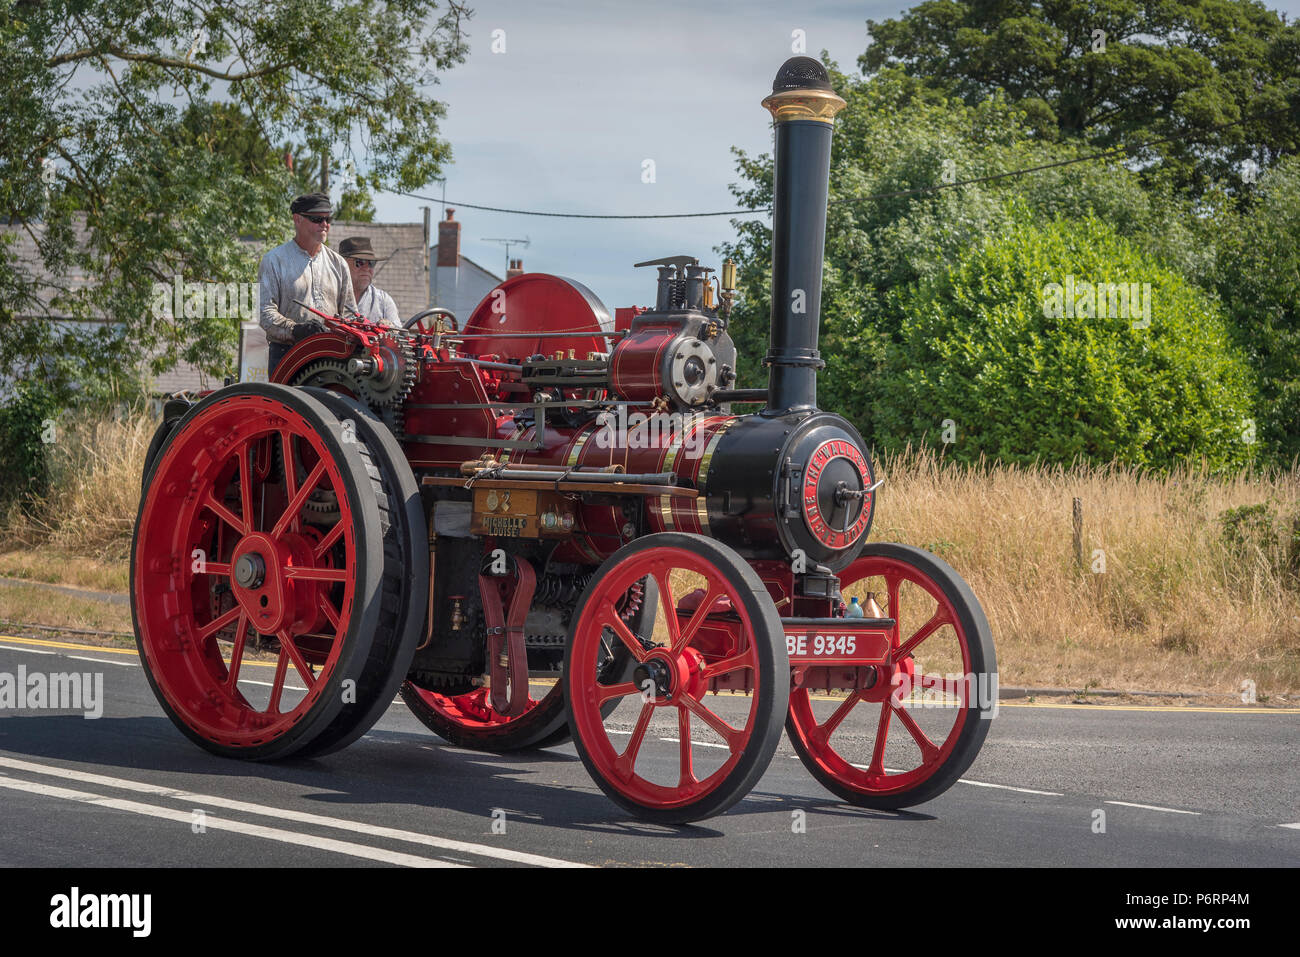 Wallis & Steevens General Purpose Engine 2394, 'Michelle Louise' steam traction engine at Acton Bridge in Cheshire North West England. - Stock Image